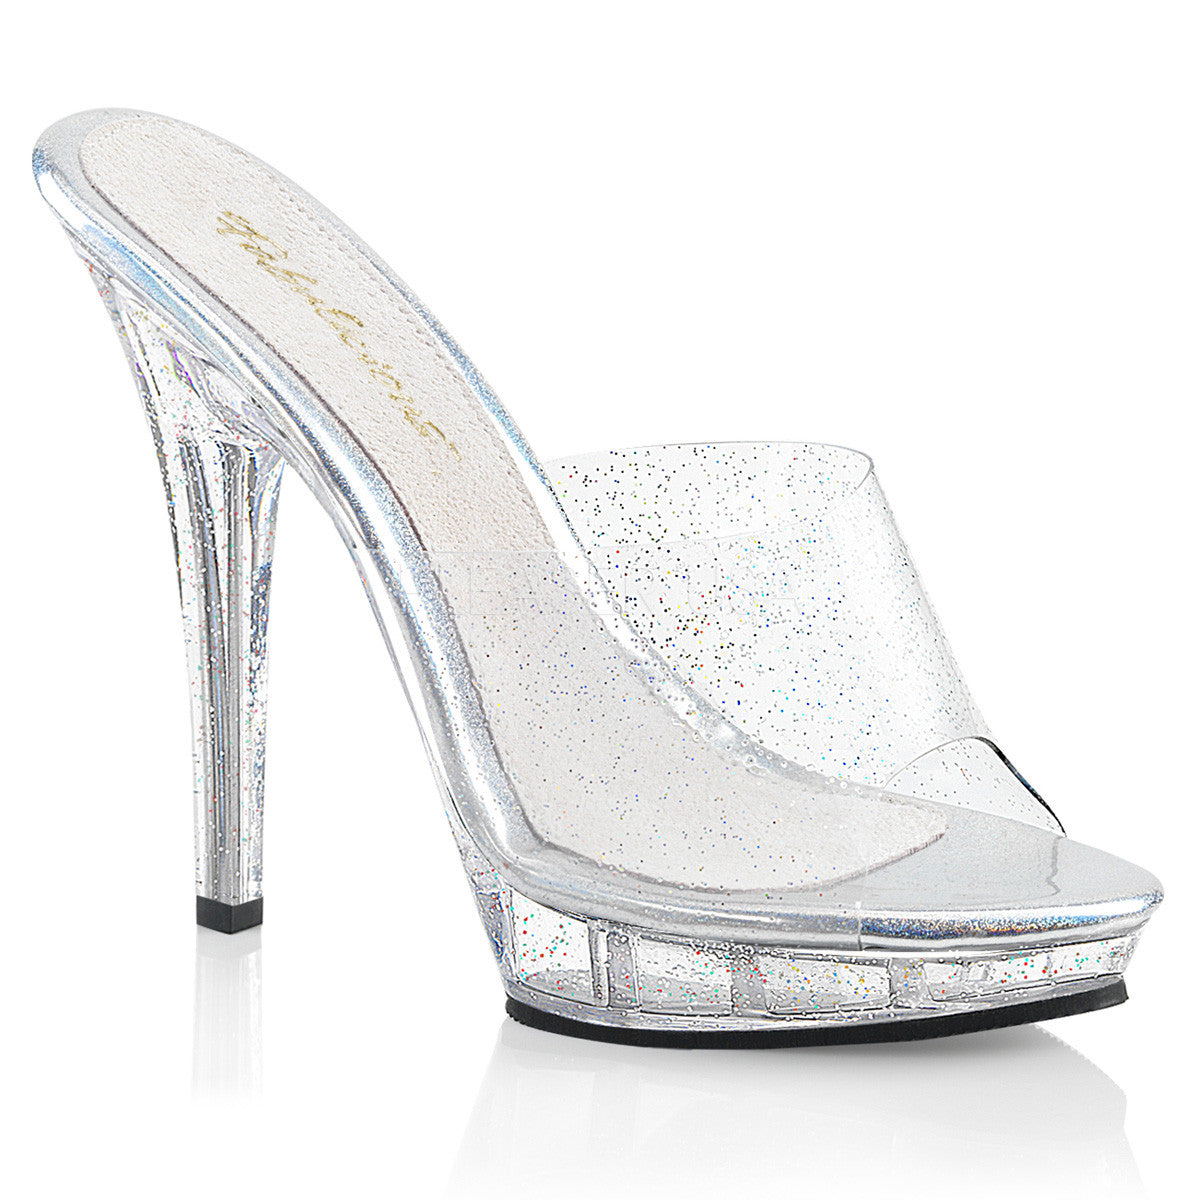 "5"" (12.7cm) Heel, 3/4"" (1.9cm) Platform Slide Featuring Mini Iridescent Glitters on the Entire Upper & Bottom"